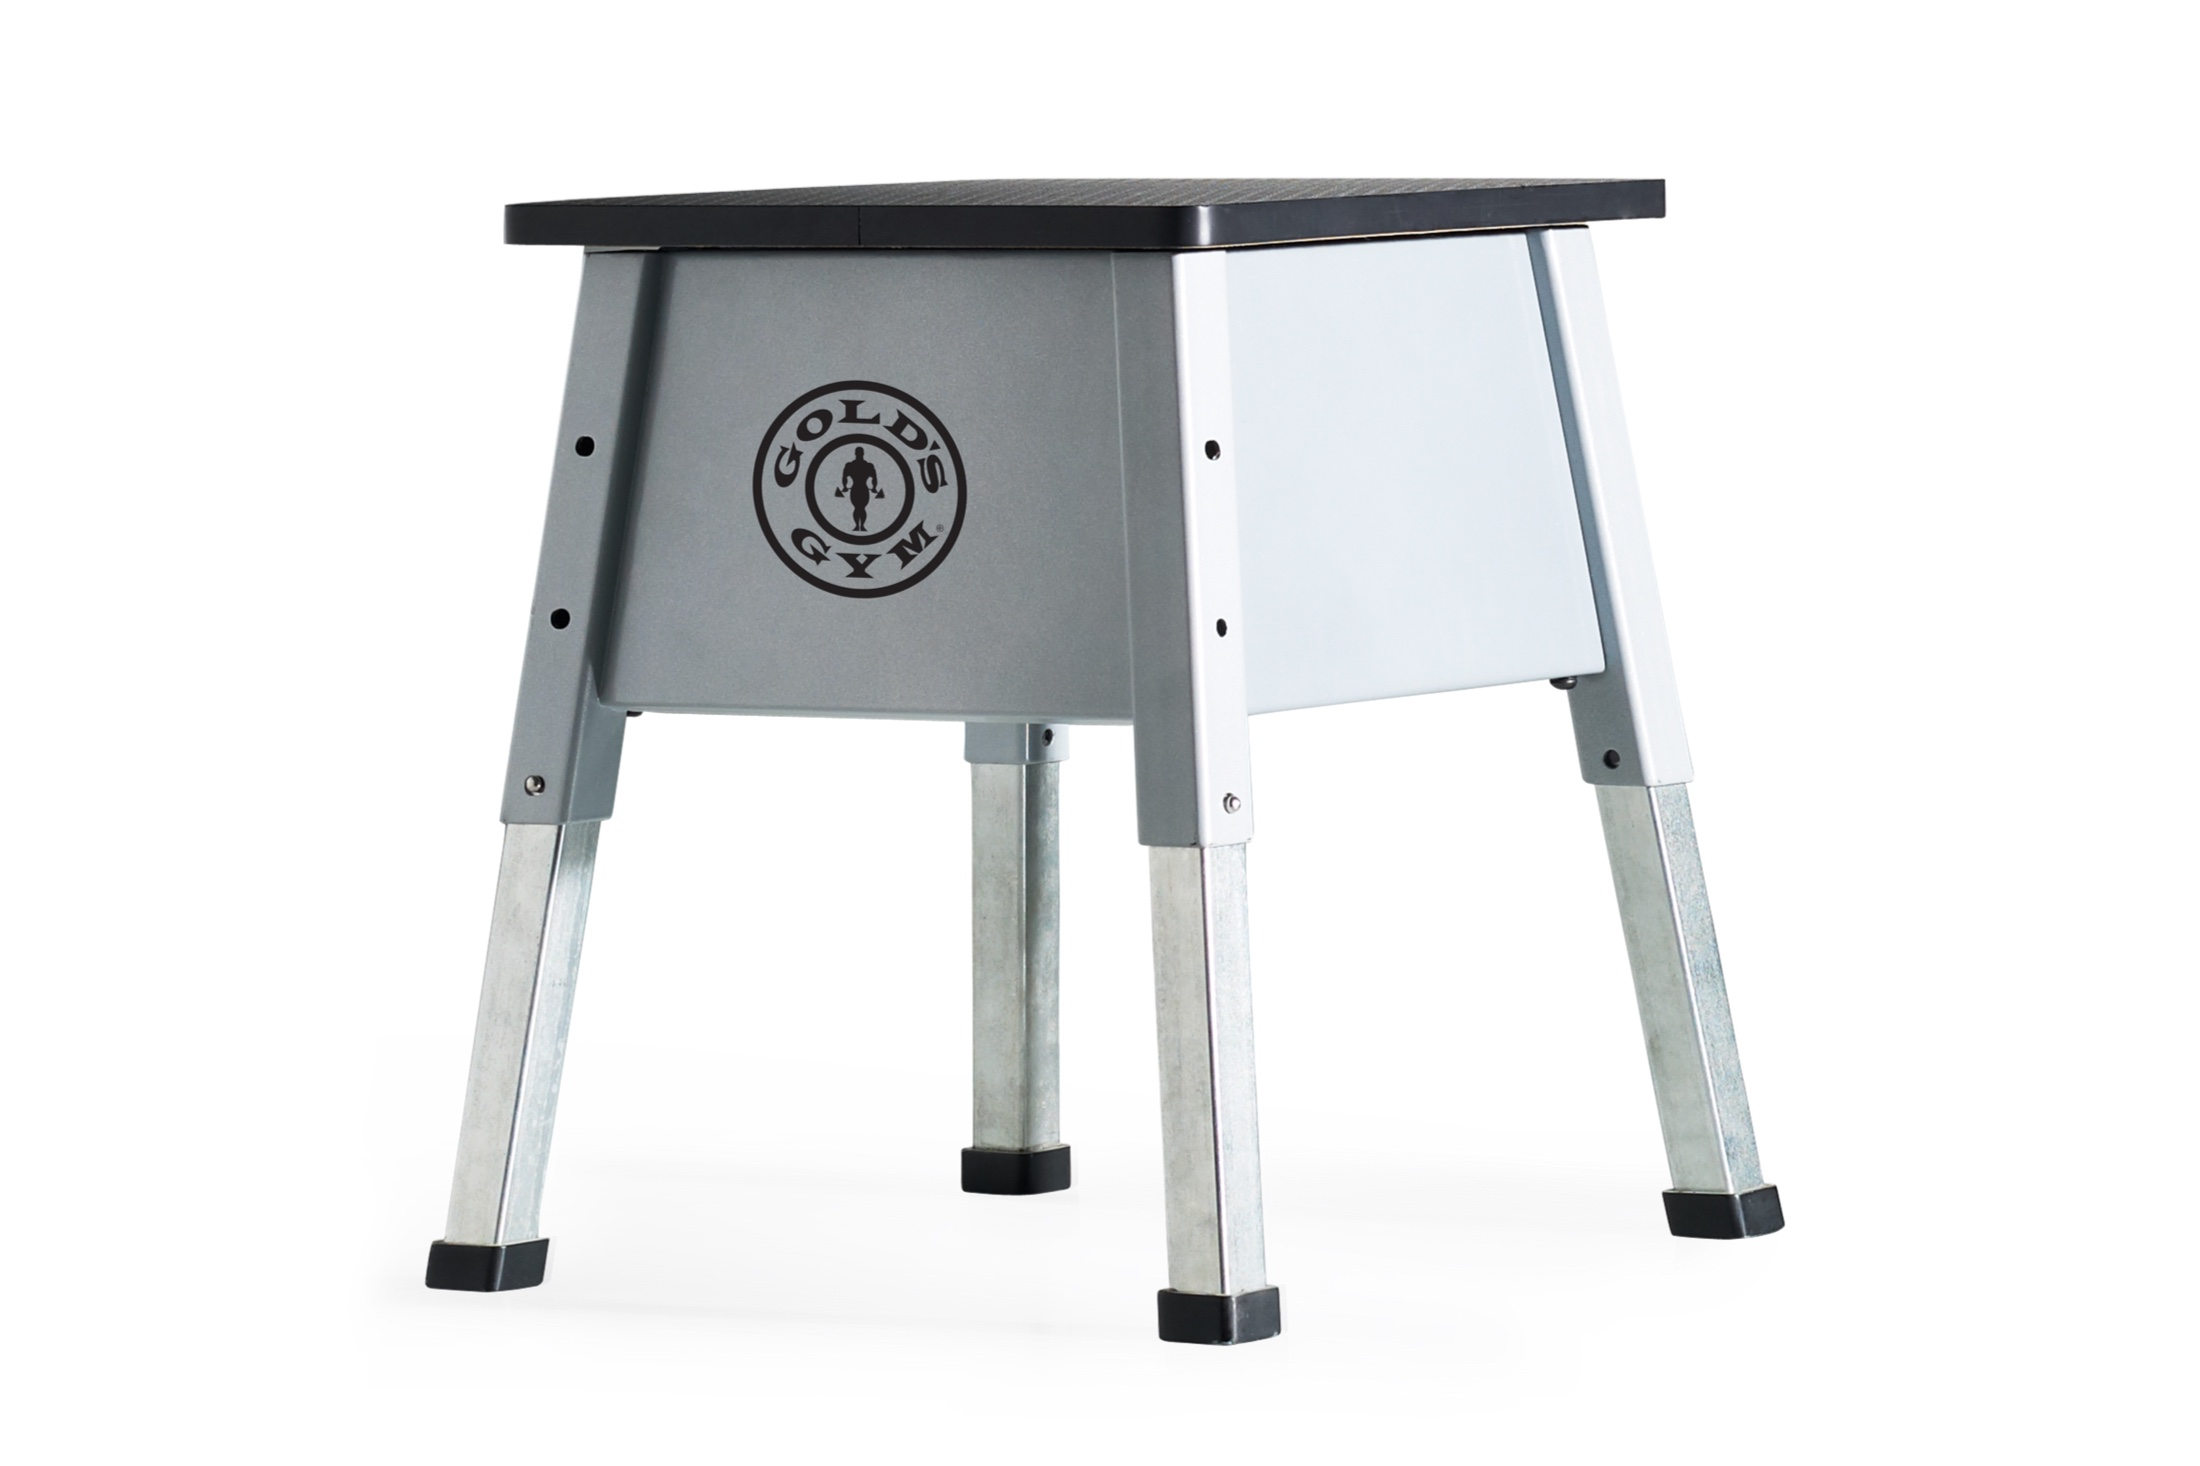 NordicTrack Gold's Gym Adjustable Plyometric Jump Box gallery image 1